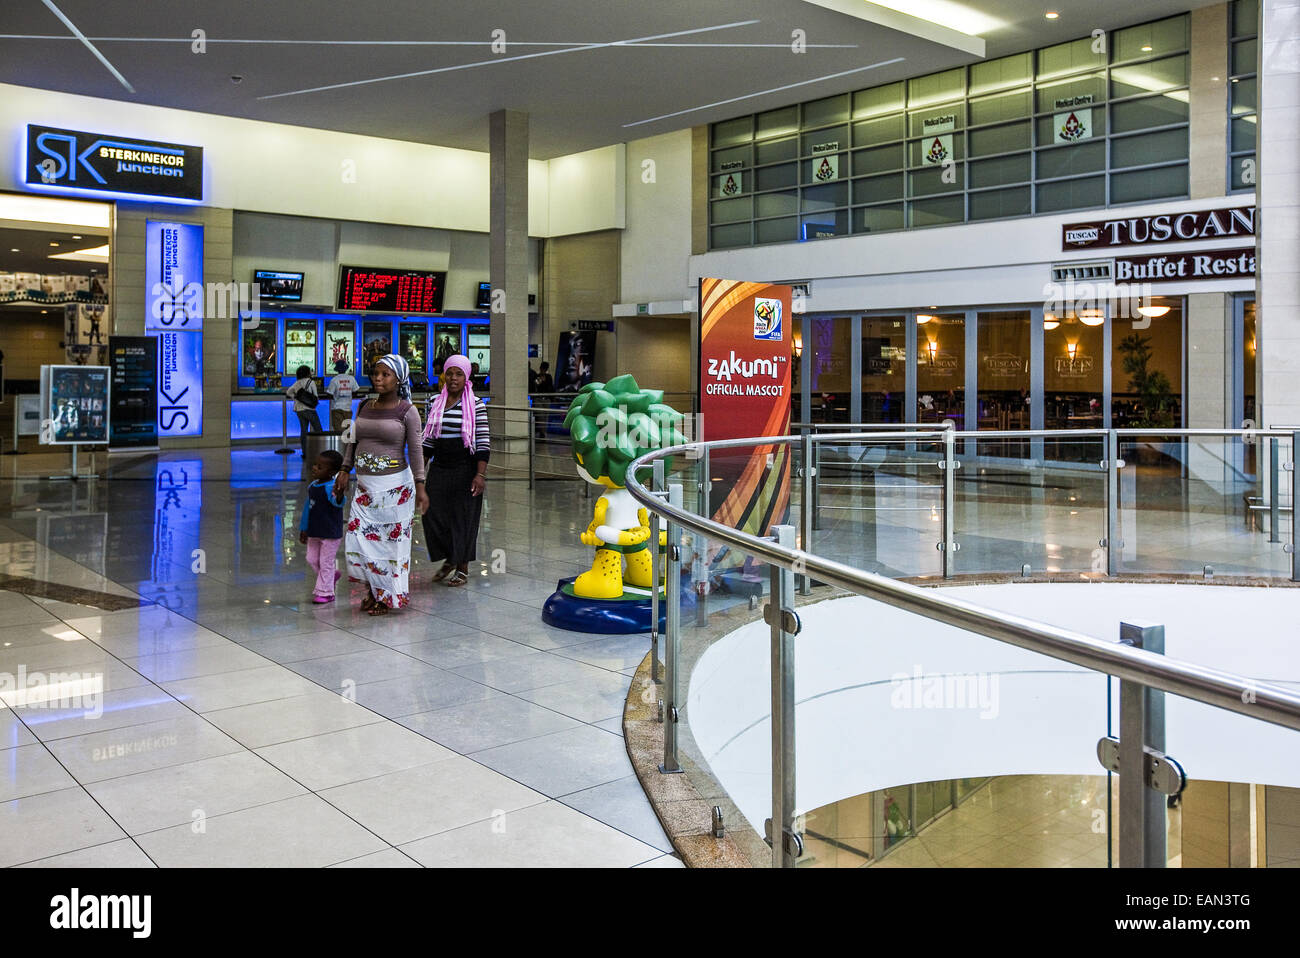 South Africa, Soweto, the new Maponya shopping center - Stock Image